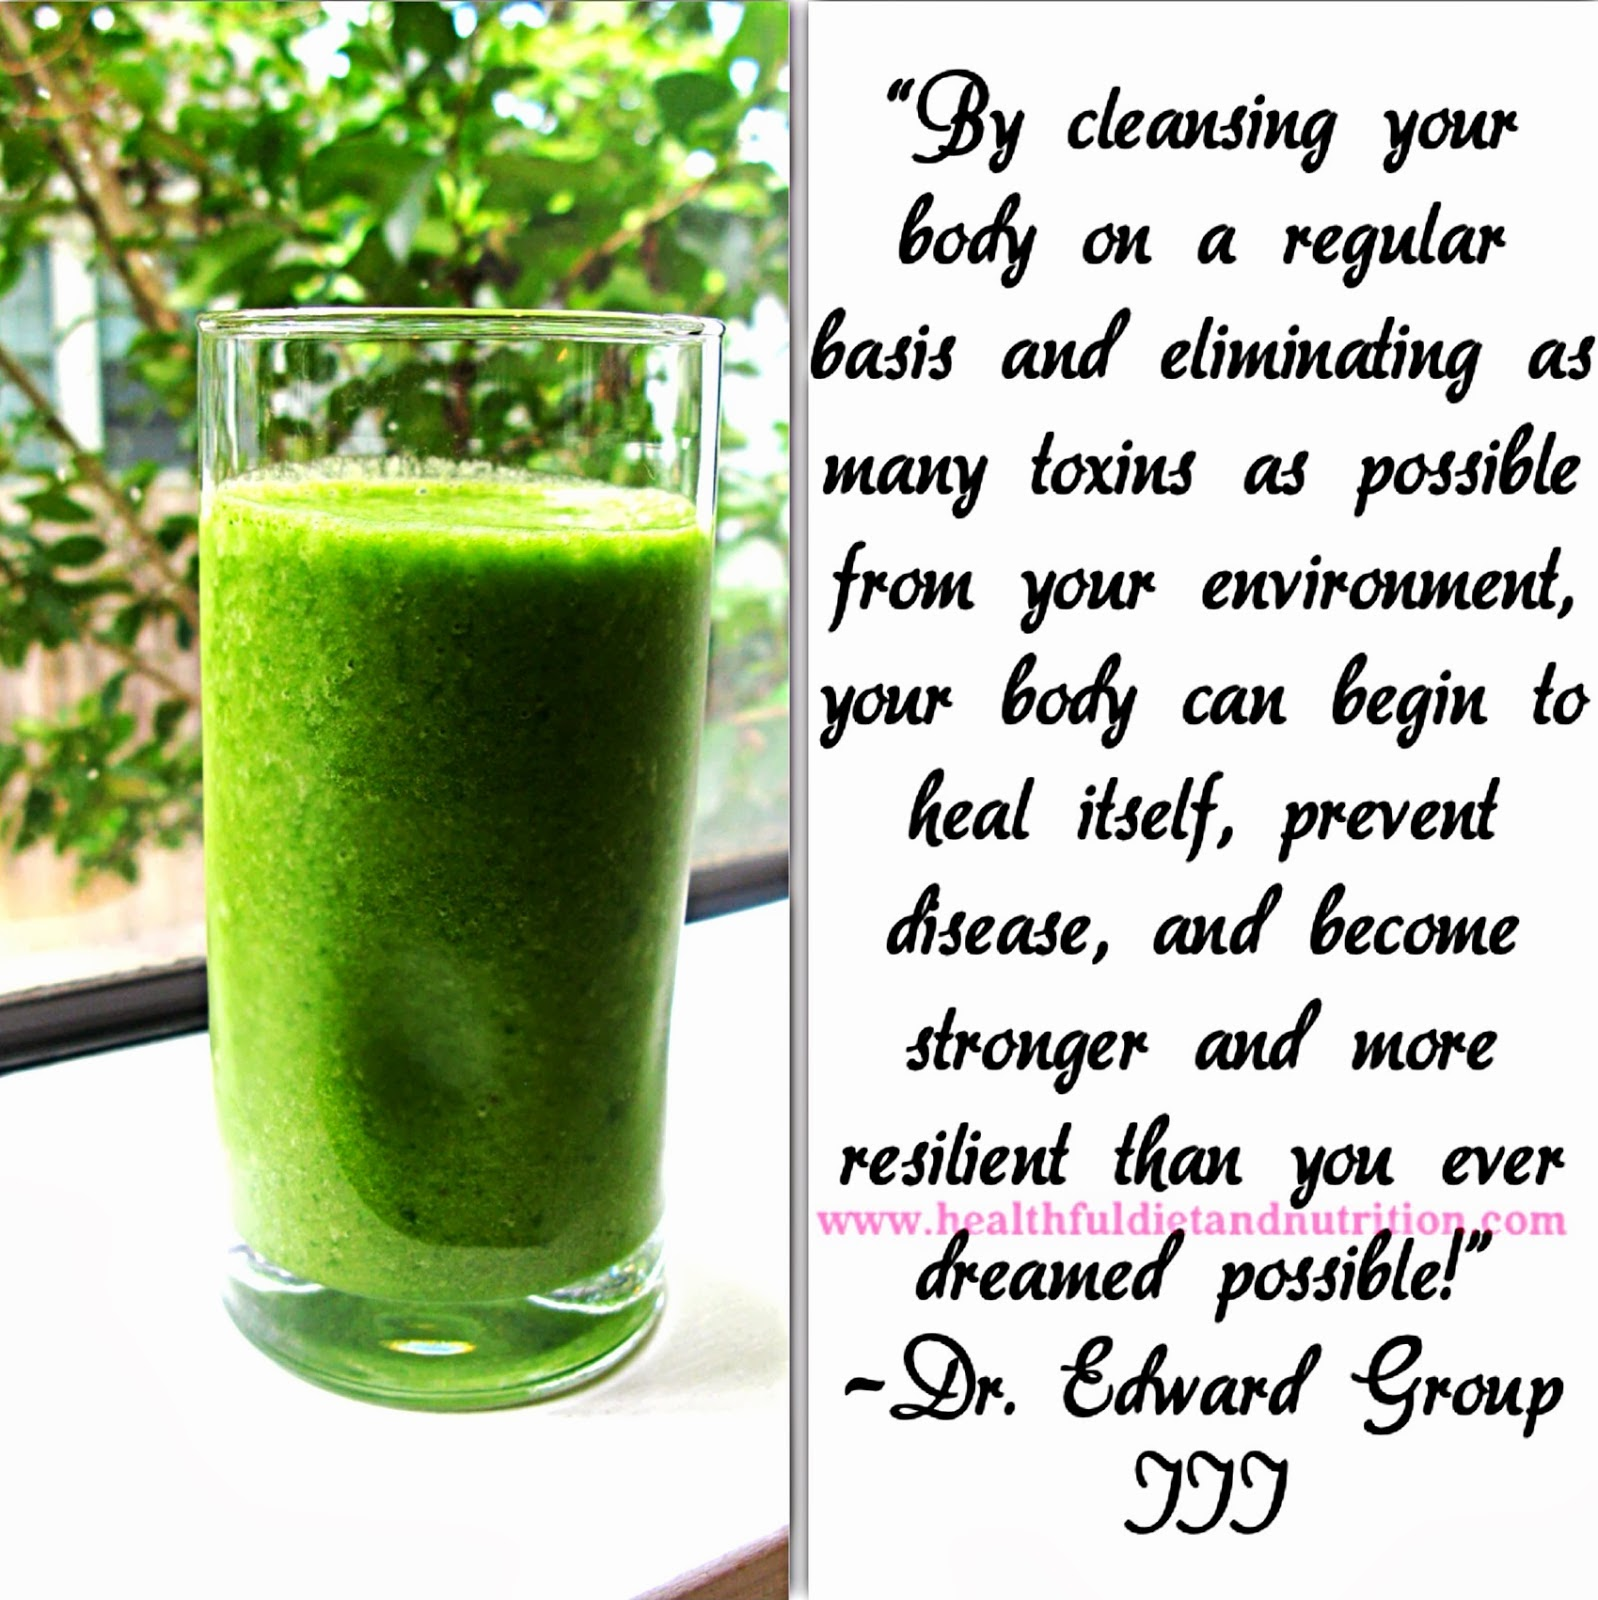 Cleanse Your Body On A Regular Basis